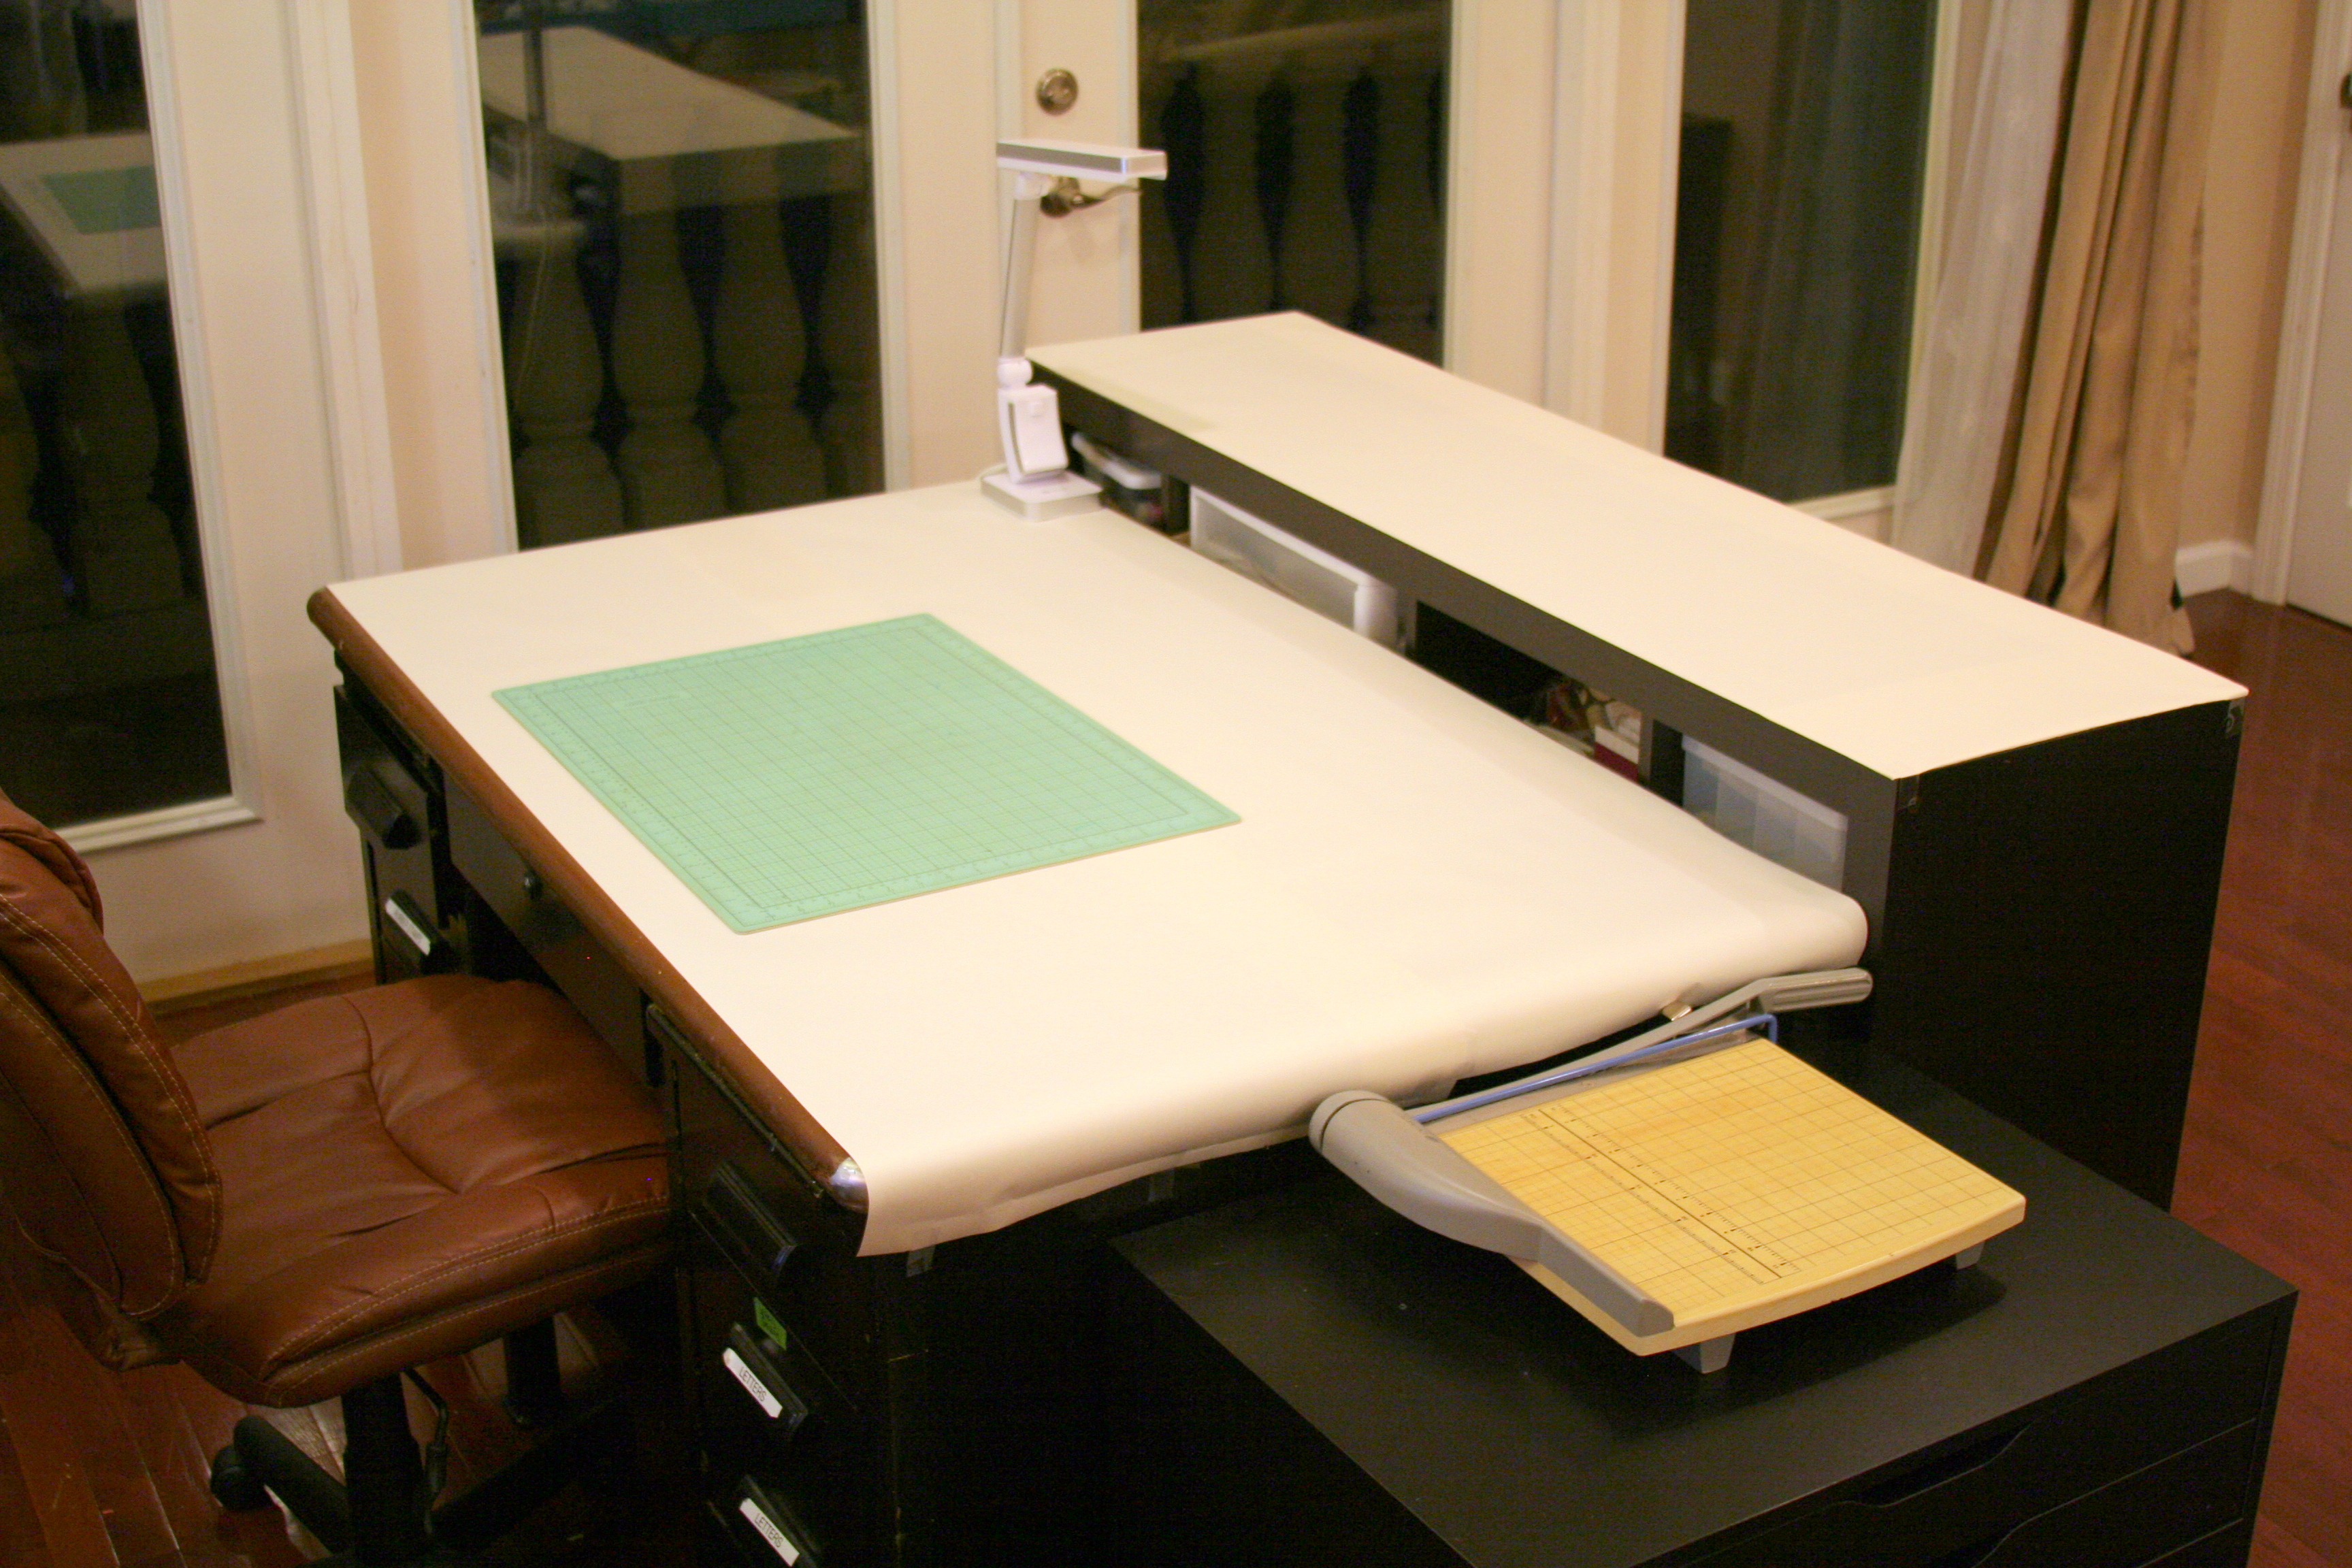 How to scrapbook without page protectors - Put Your Completed Layouts In Albums I Keep A Stack Of Completed Layouts It Was Long Overdue For Me To Put Them In Page Protectors And Put Them Into